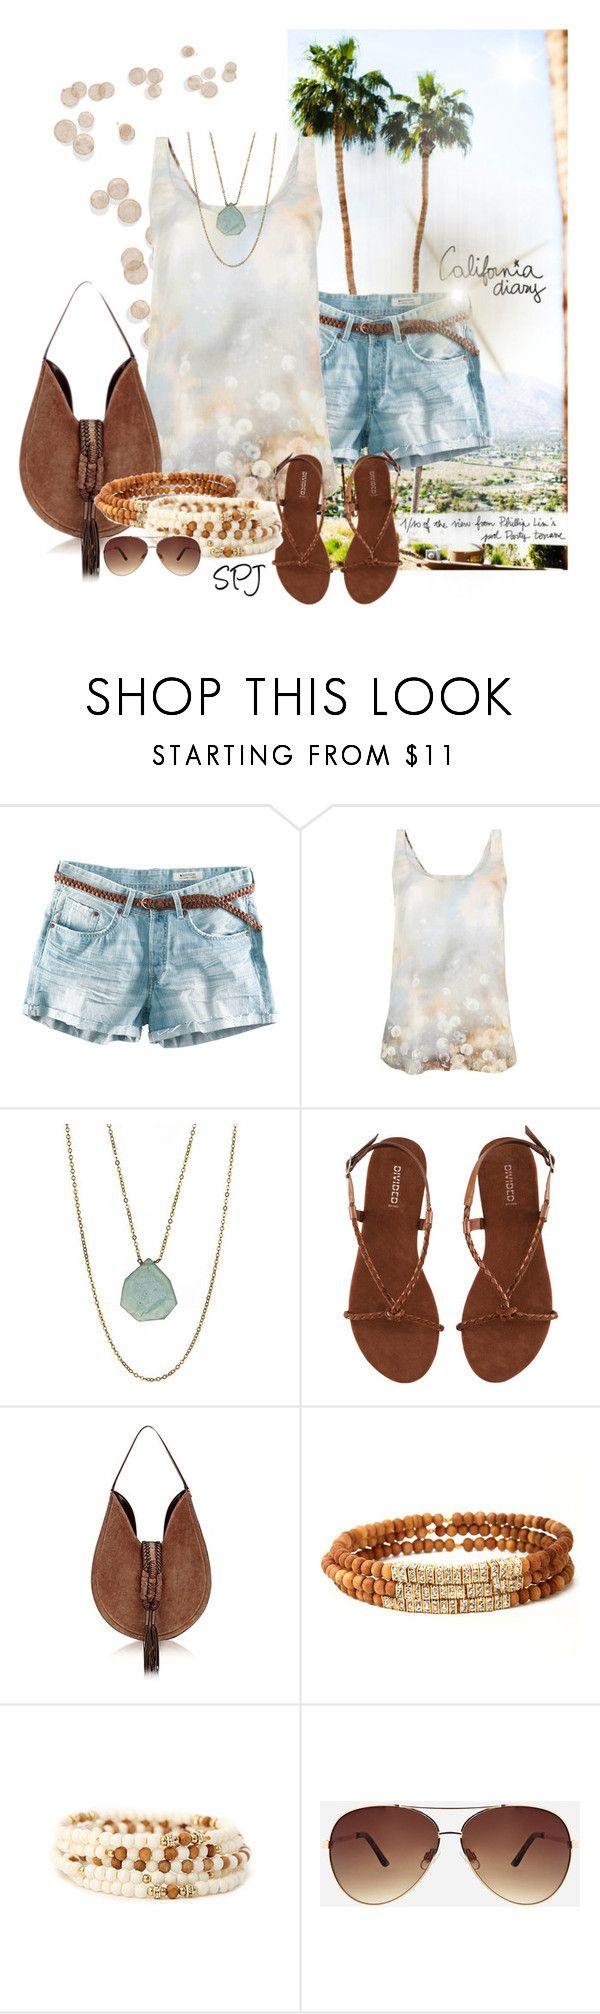 """""""California Diary"""" by s-p-j ❤ liked on Polyvore featuring Garance Doré, H&M, Paul Smith, GIGIchic, Altuzarra and Ashley Stewart"""